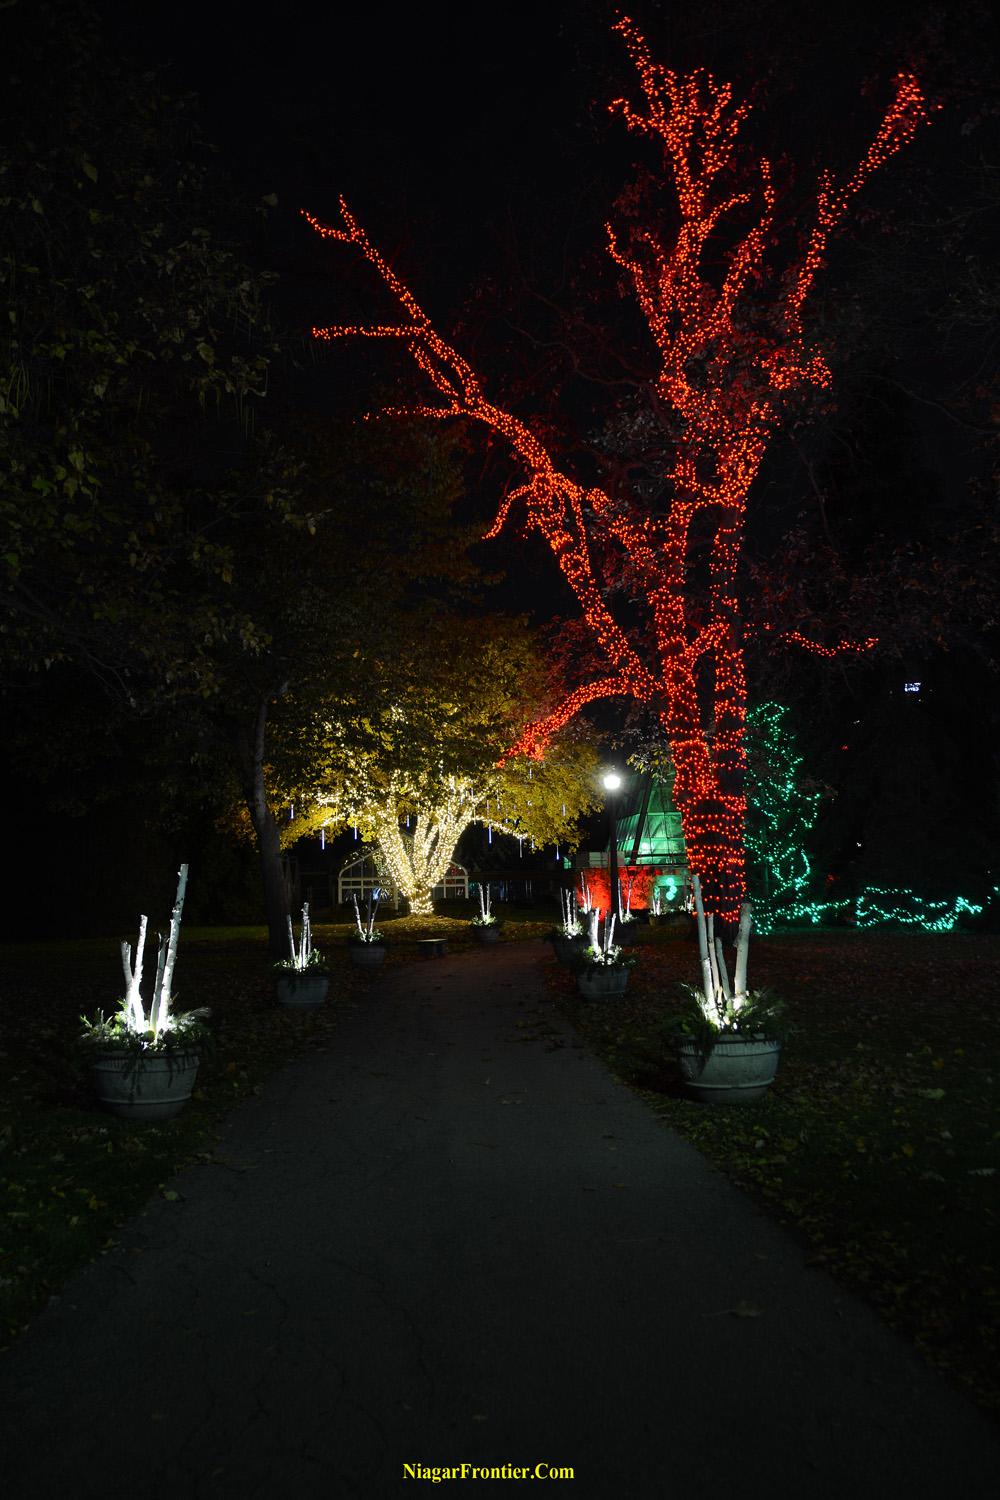 niagara falls ontario festive light displays at